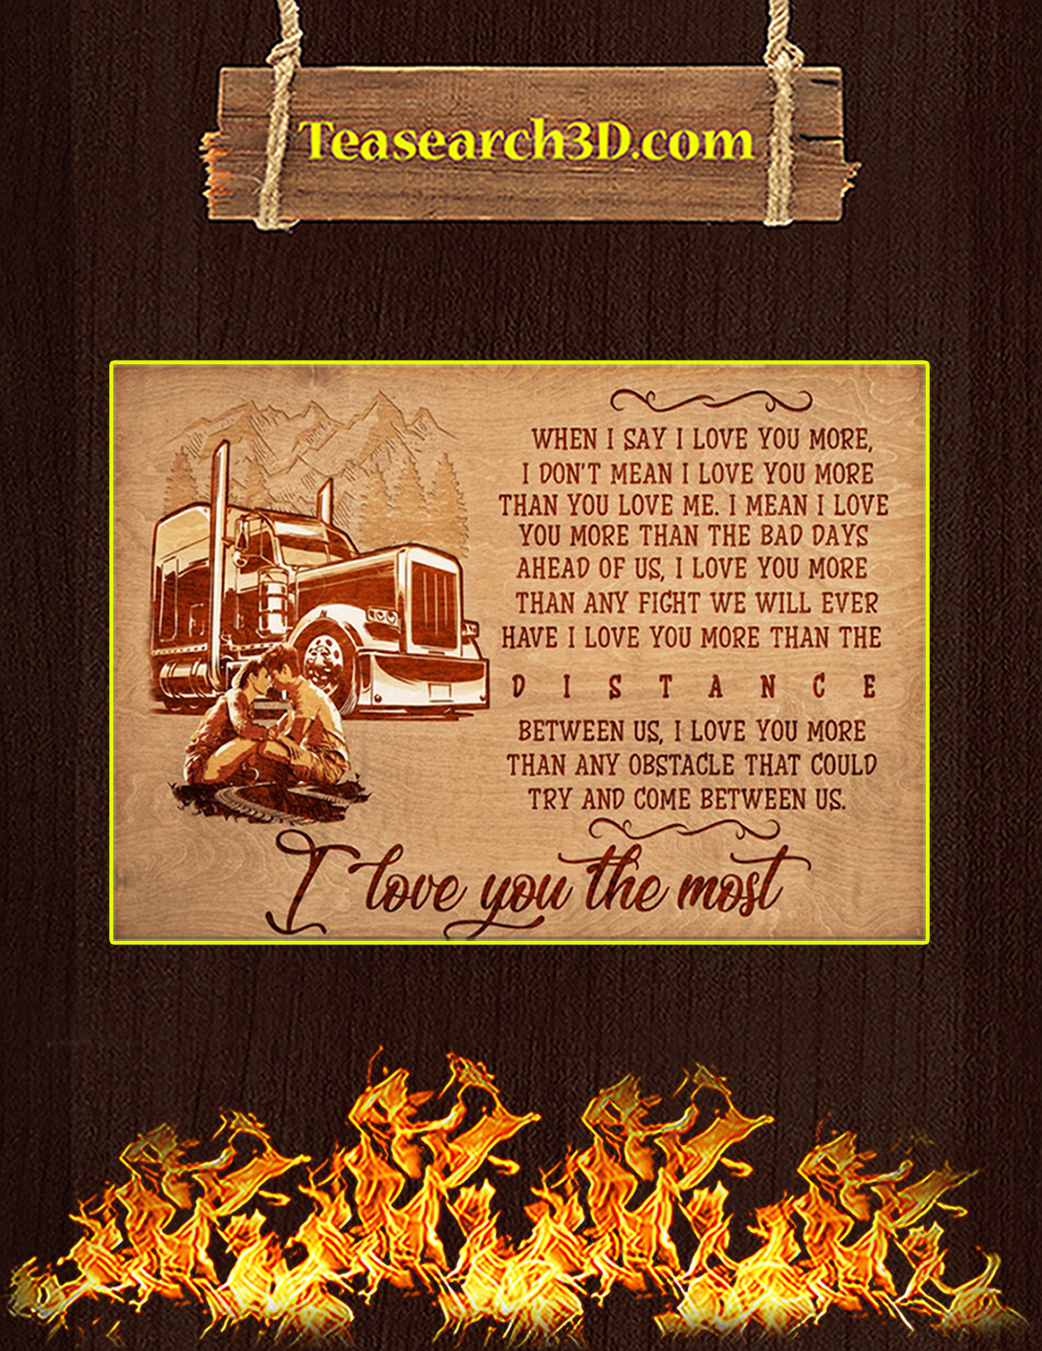 Trucker I love you the most poster A1